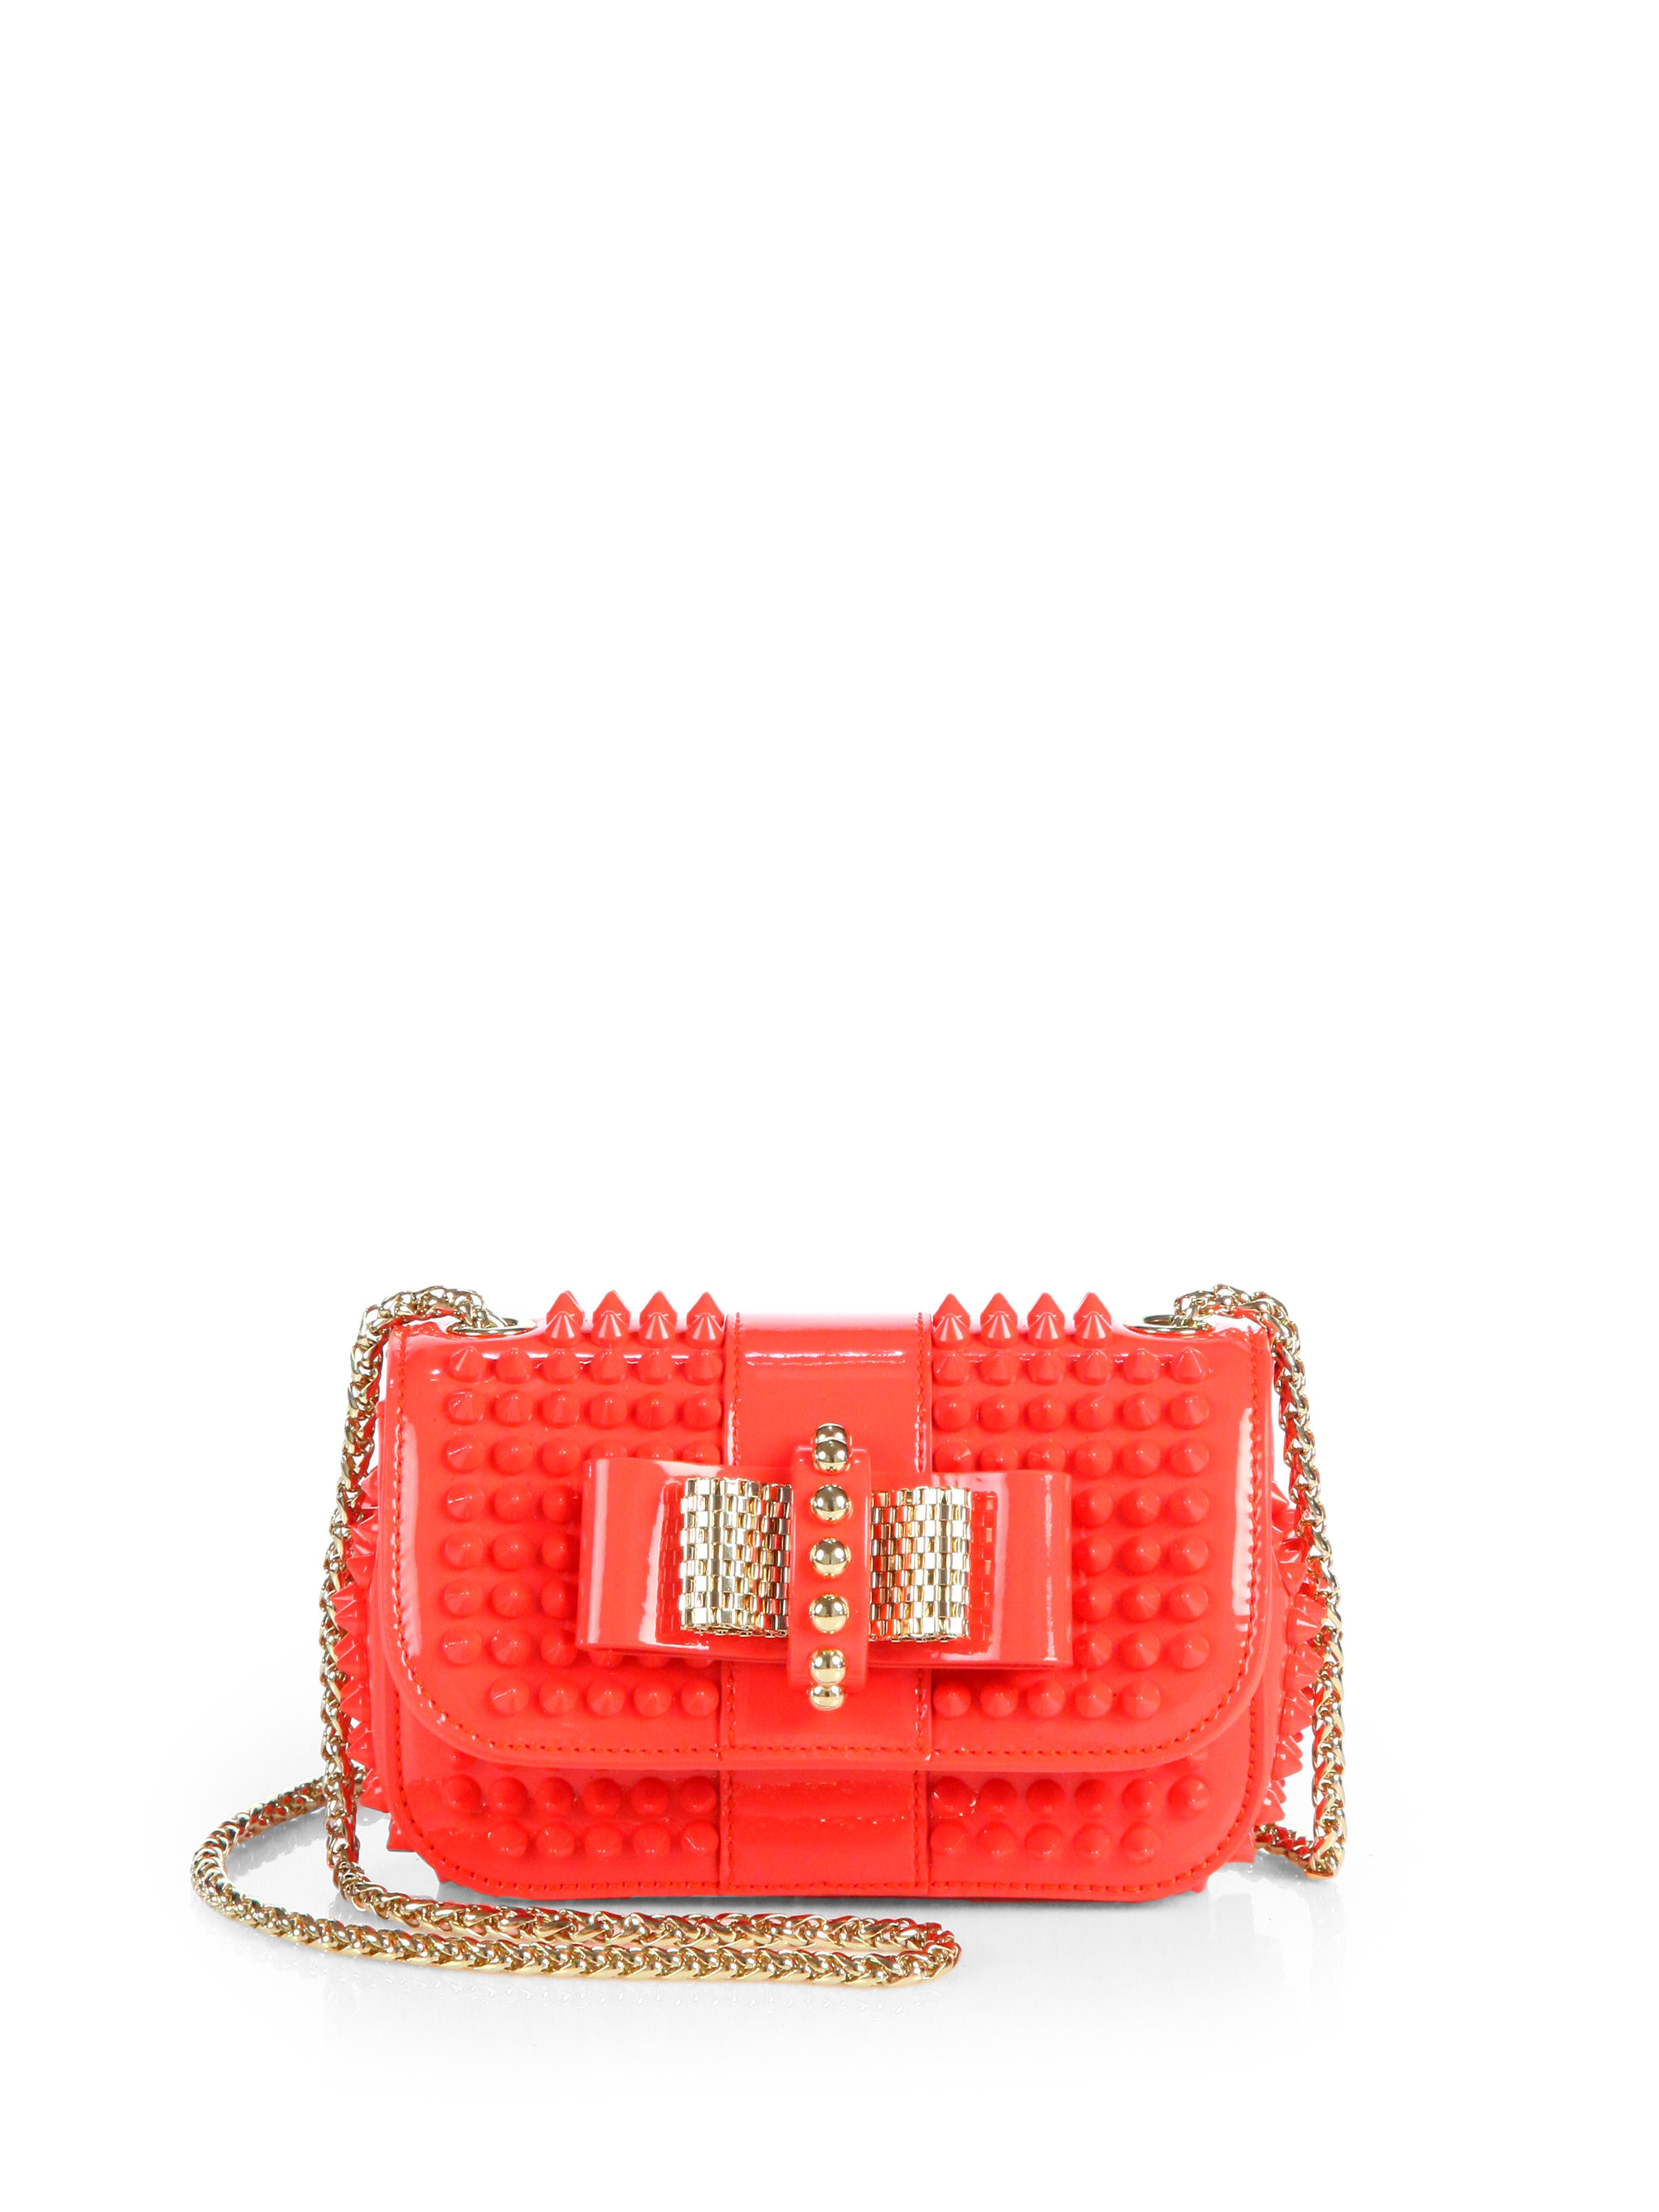 Christian Louboutin Red Leather Spiked Sweet Charity